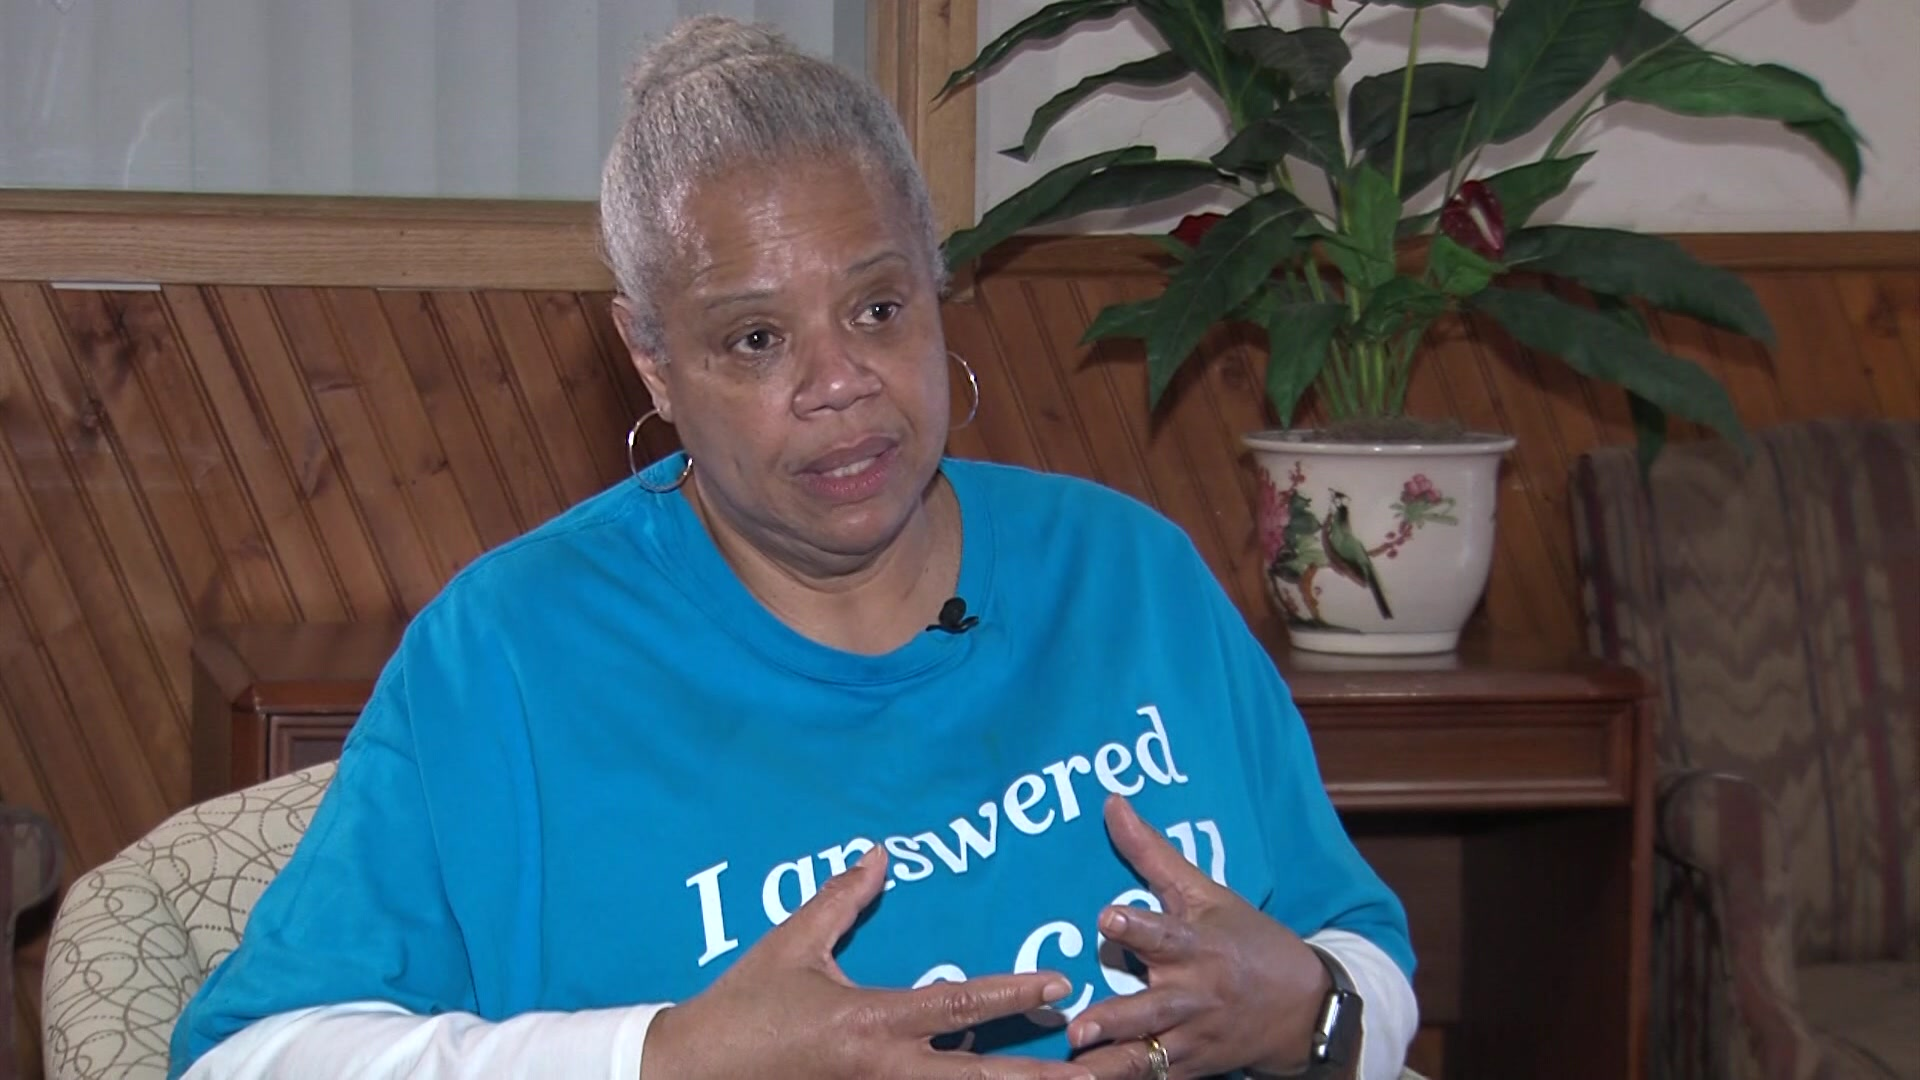 Natalie's Everyday Heroes: Julia Means works to fight infant mortality in Milwaukee